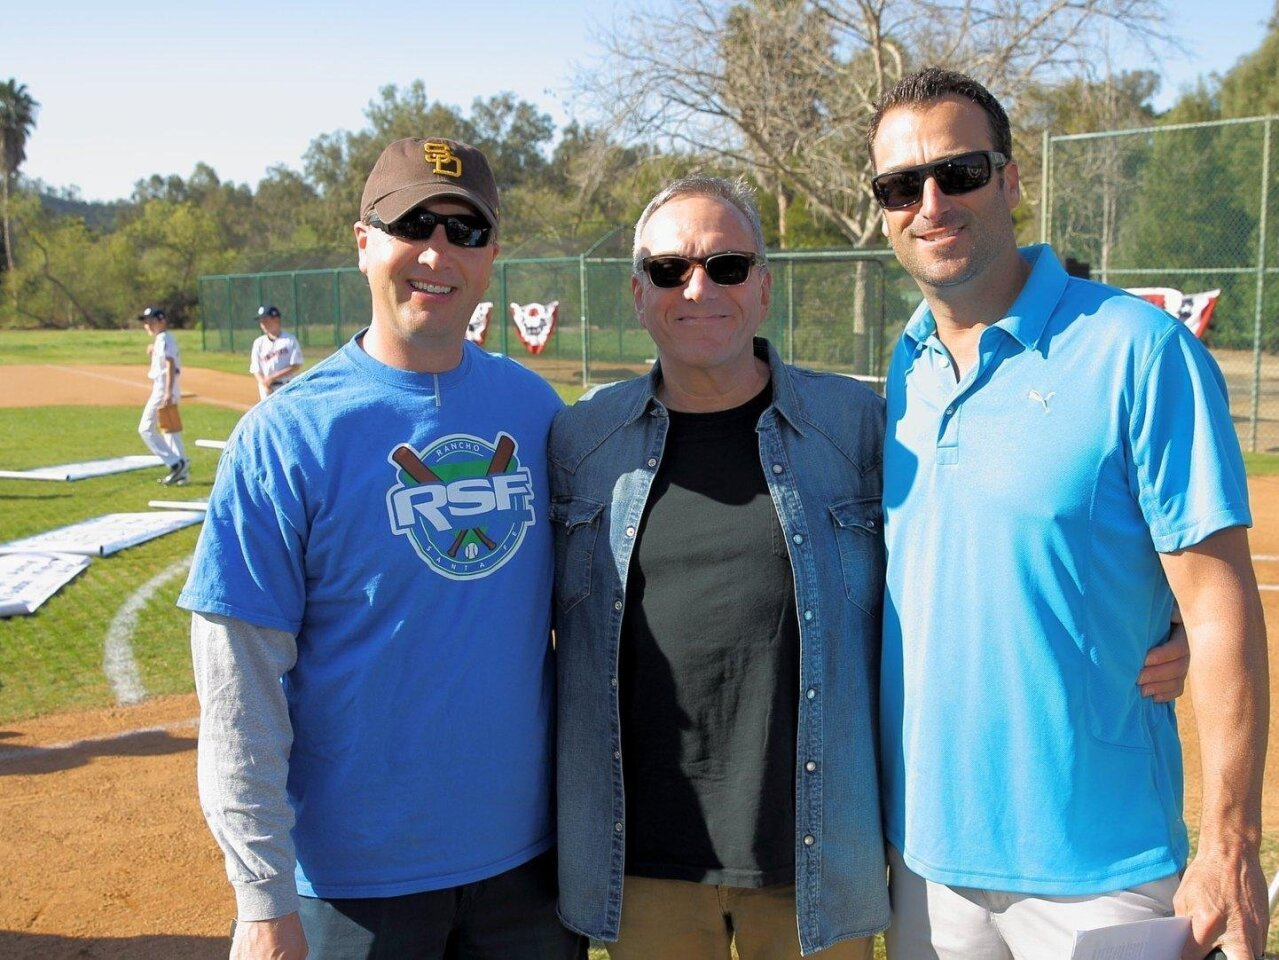 RSFLL past-president Tyler Seltzer, long-time supporter Mitch Levy, and current president Jeff Daley